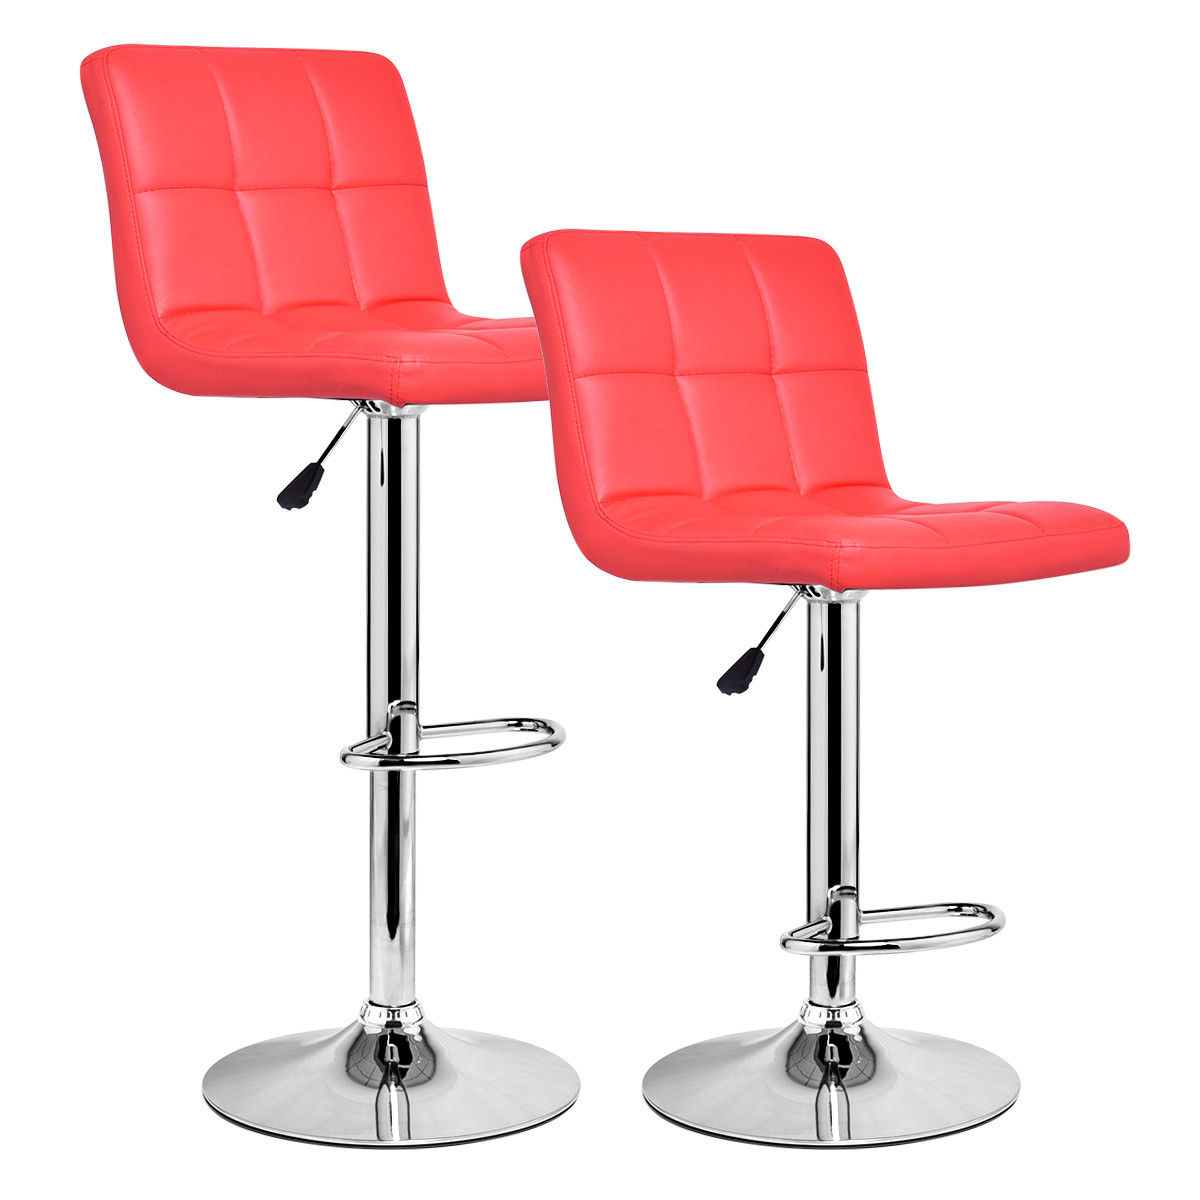 Costway Set Of 2 Bar Stools PU Leather Adjustable Bar Stool Swivel Pub Chairs Red by Costway